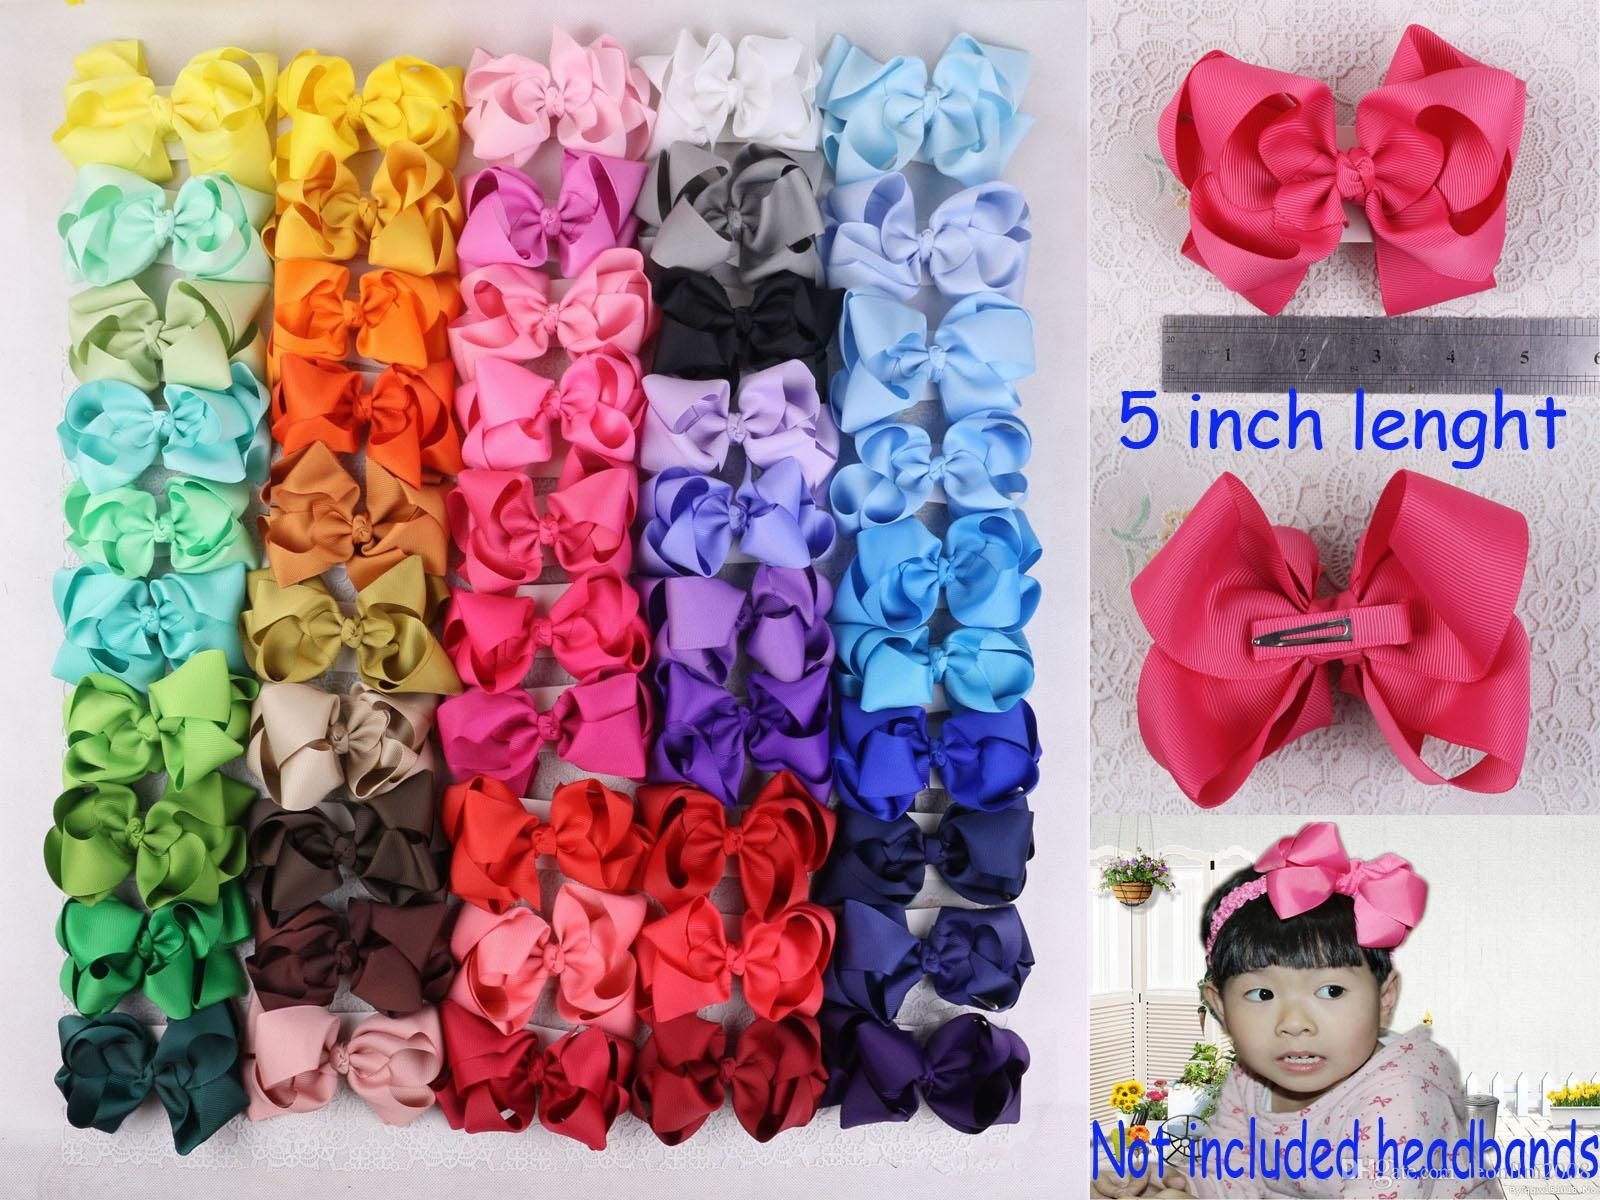 Big Hair Clips With Ribbon Bows For Girls Babies Children Kids Accessories New